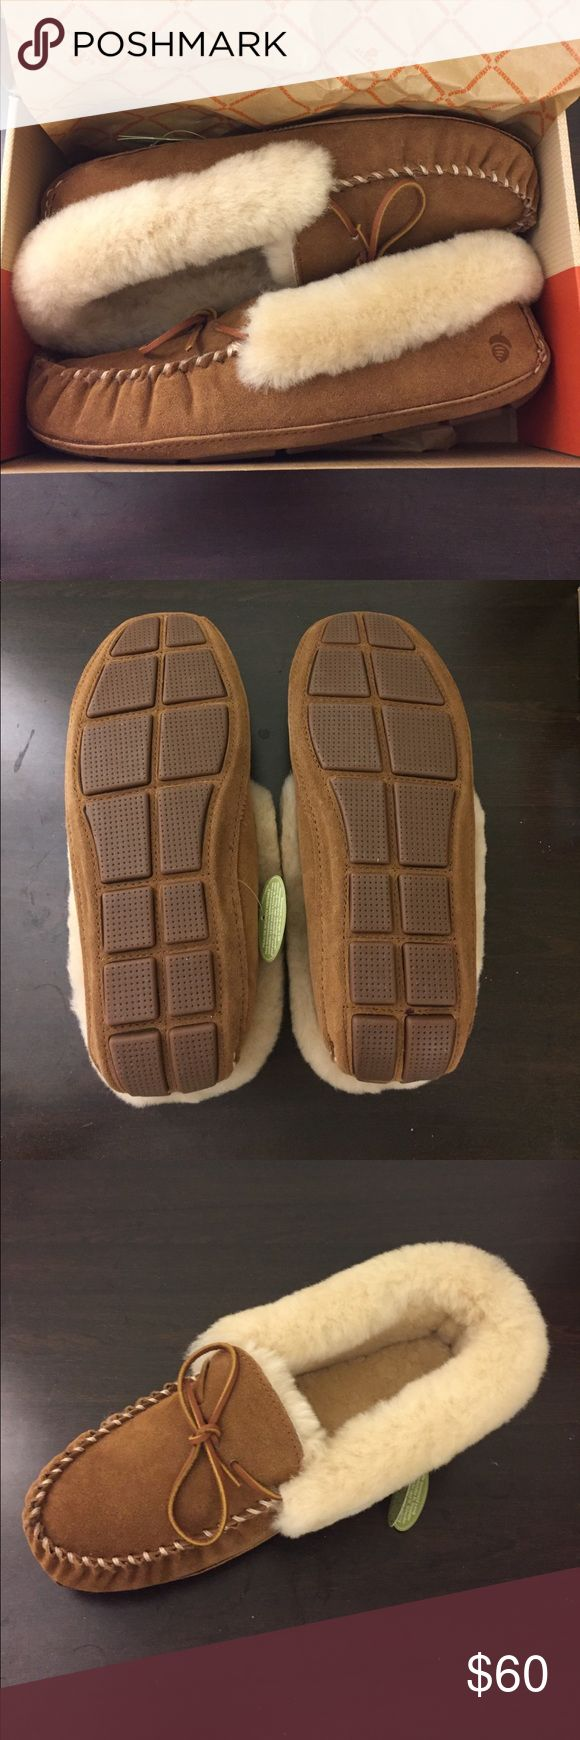 """NWT Acorn Sheepskin Moccasin Size 11 NWT chestnut-colored sheepskin """"Moxie"""" slippers. Soft, thick, and true to size. I've walked miles at a time in Acorn slippers before and never felt a thing. Acorn Shoes Moccasins"""